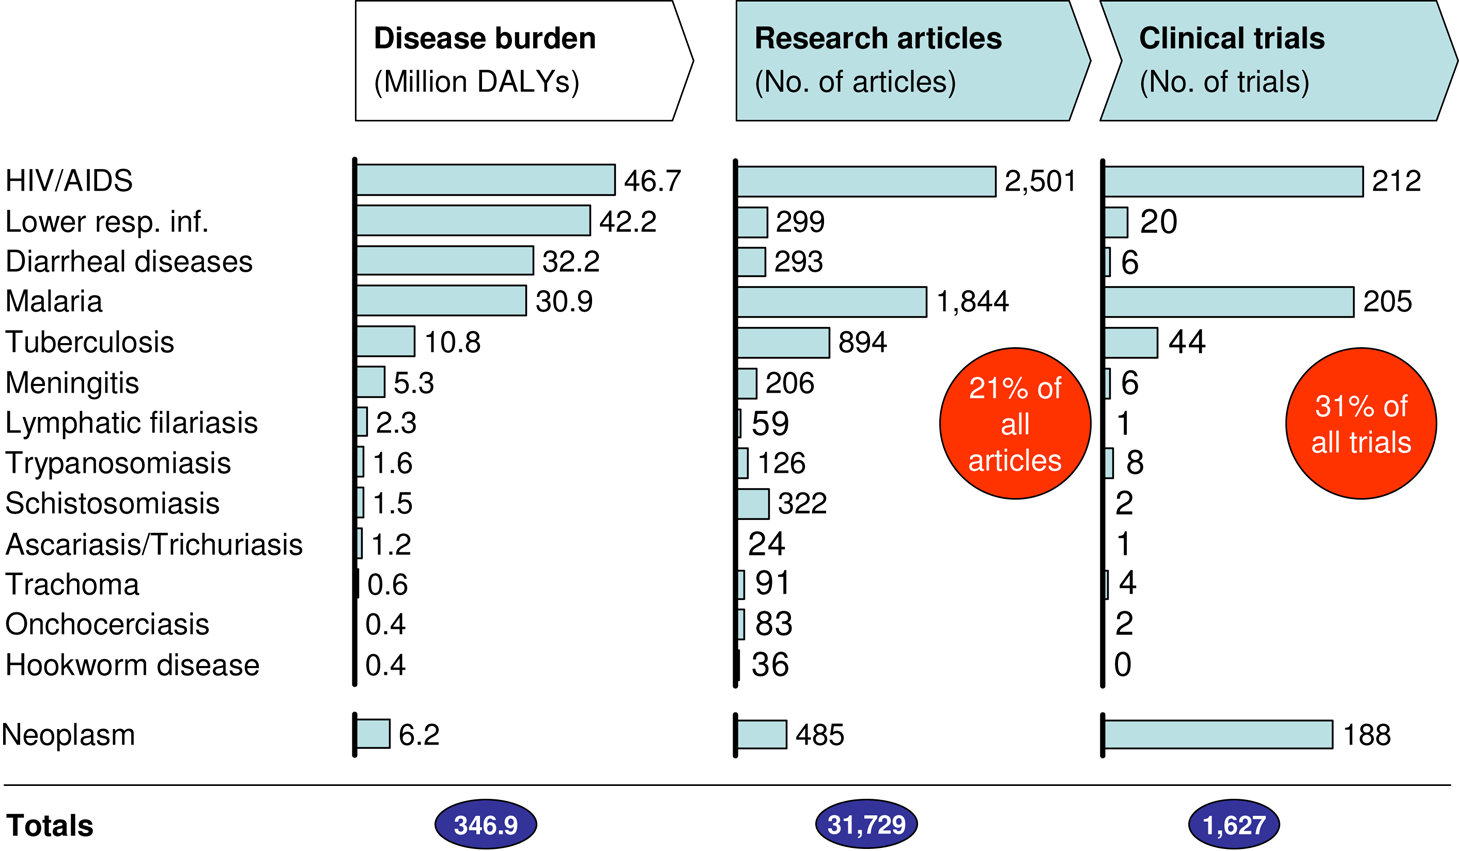 Diseases disproportionately affecting Africa are under-prioritized.